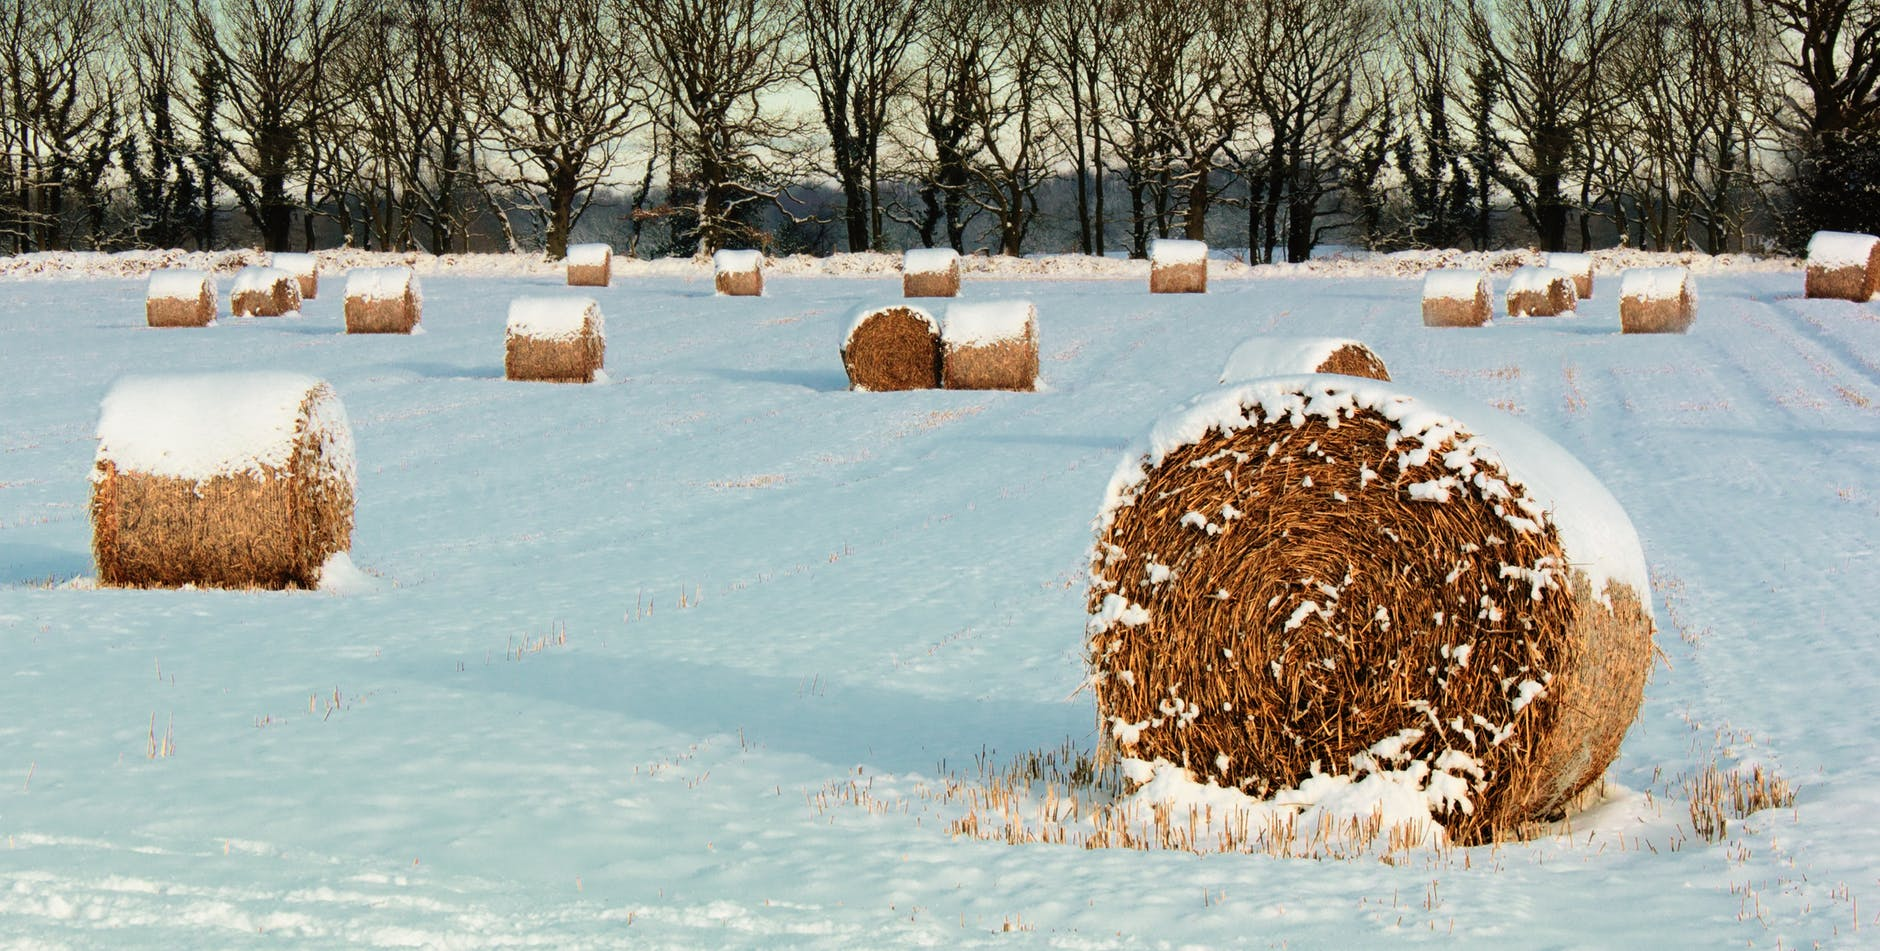 Now is the time for beef producers to prepare their cattle operations for winter.